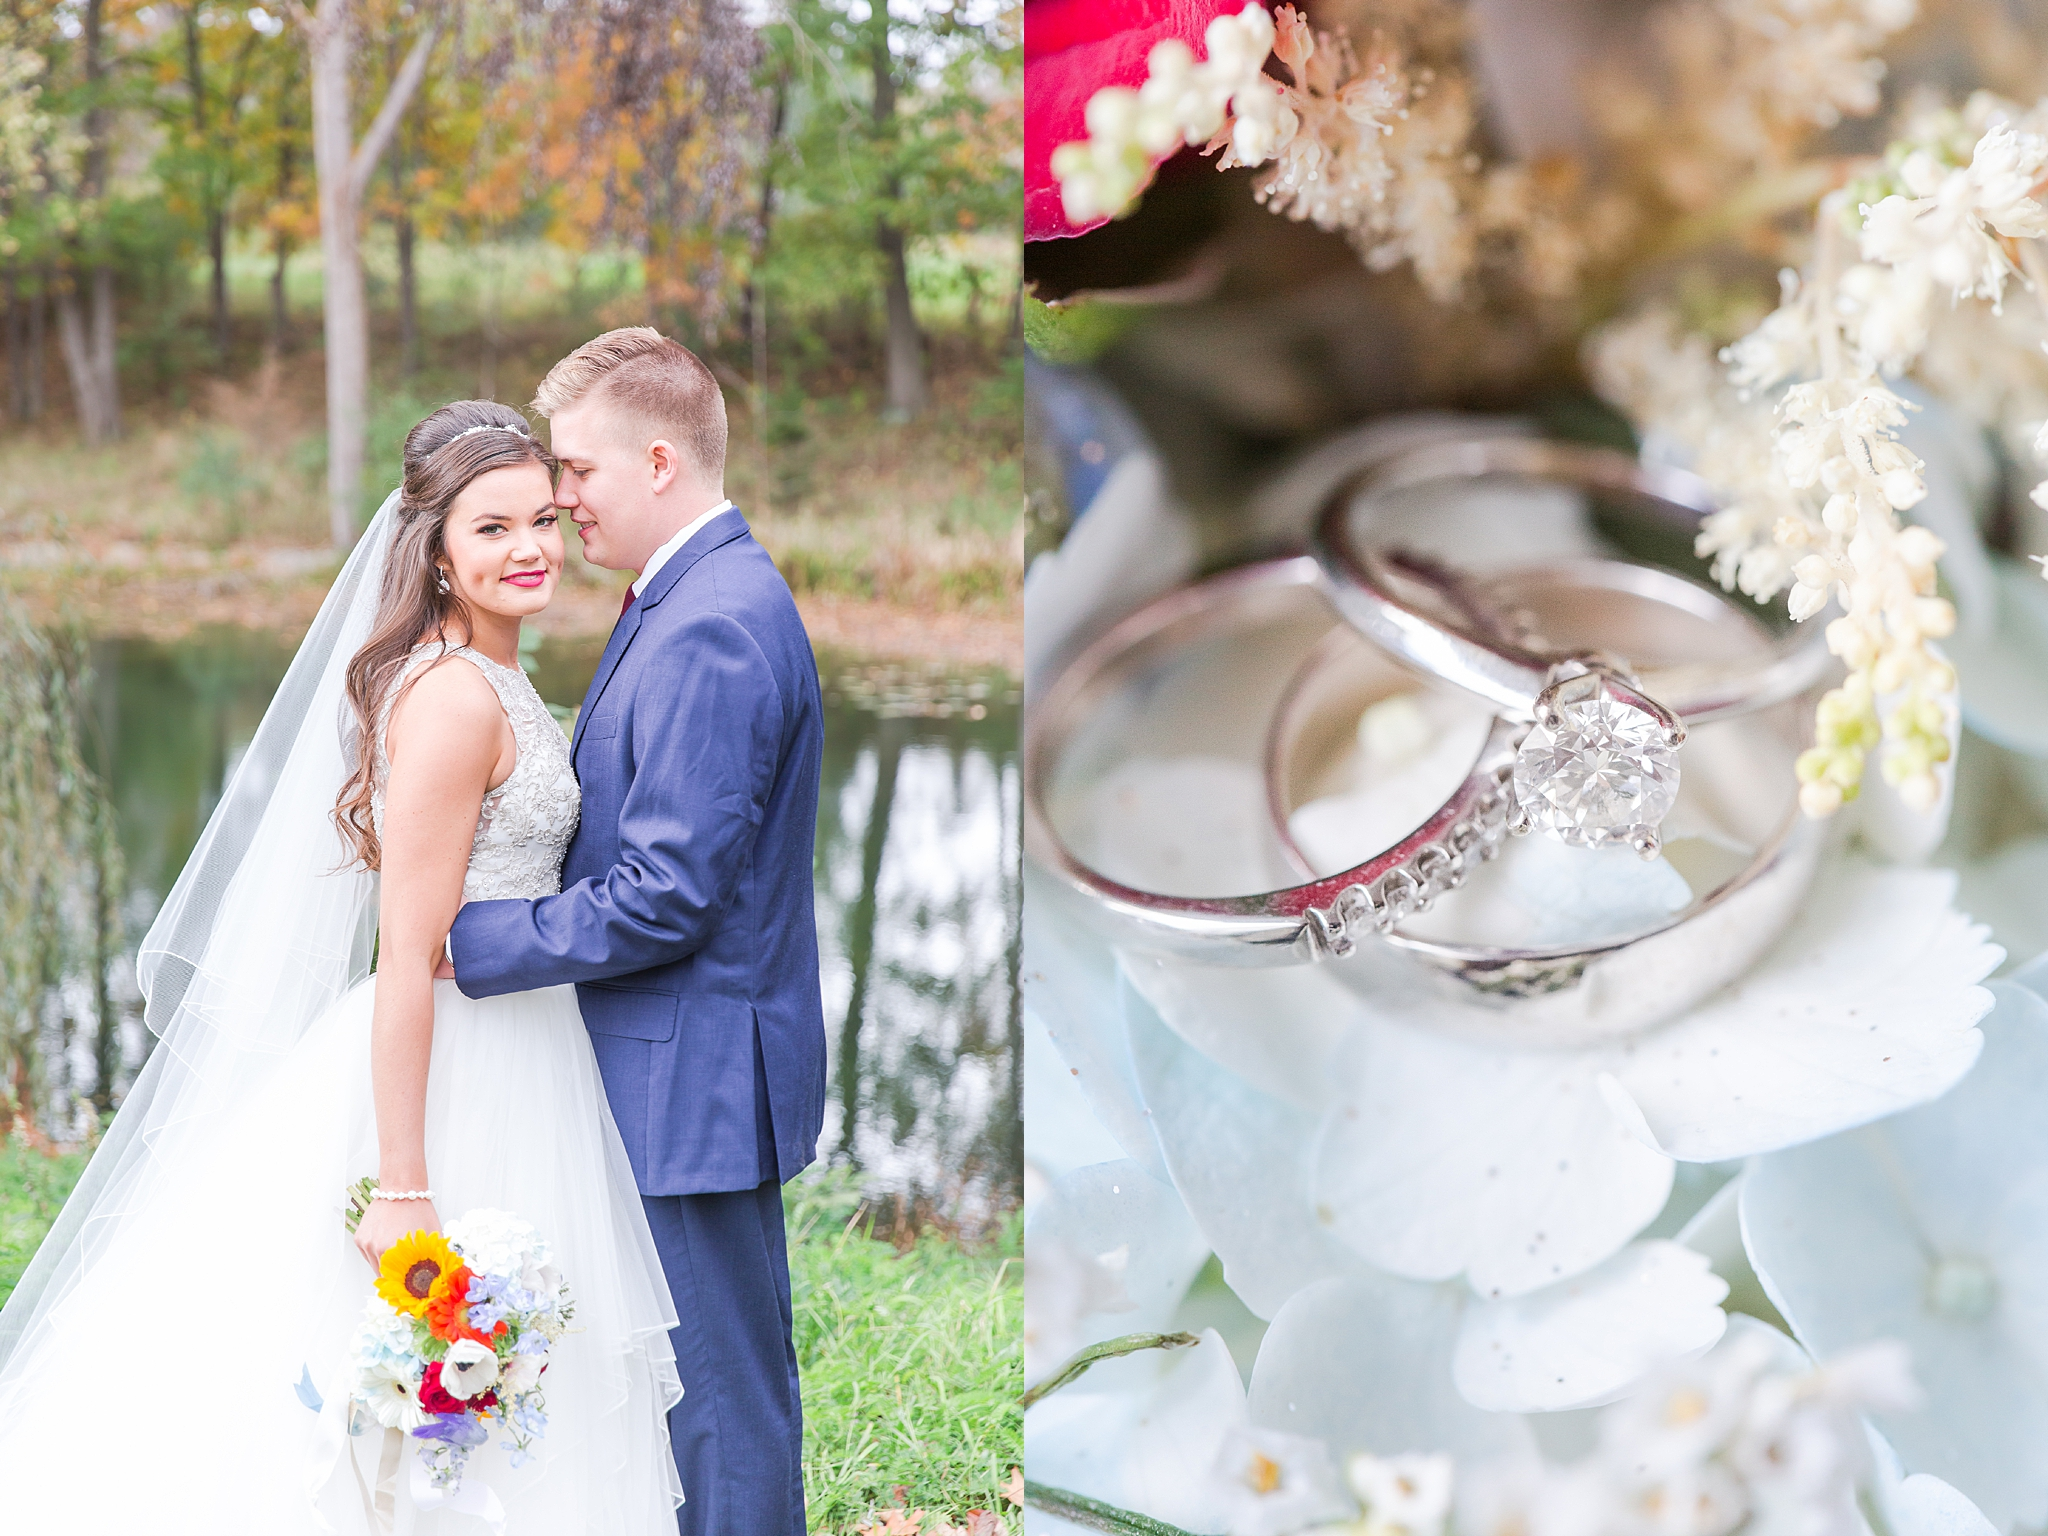 rustic-whimsical-wedding-photos-the-vale-royal-barn-in-fenton-michigan-by-courtney-carolyn-photography_0026.jpg